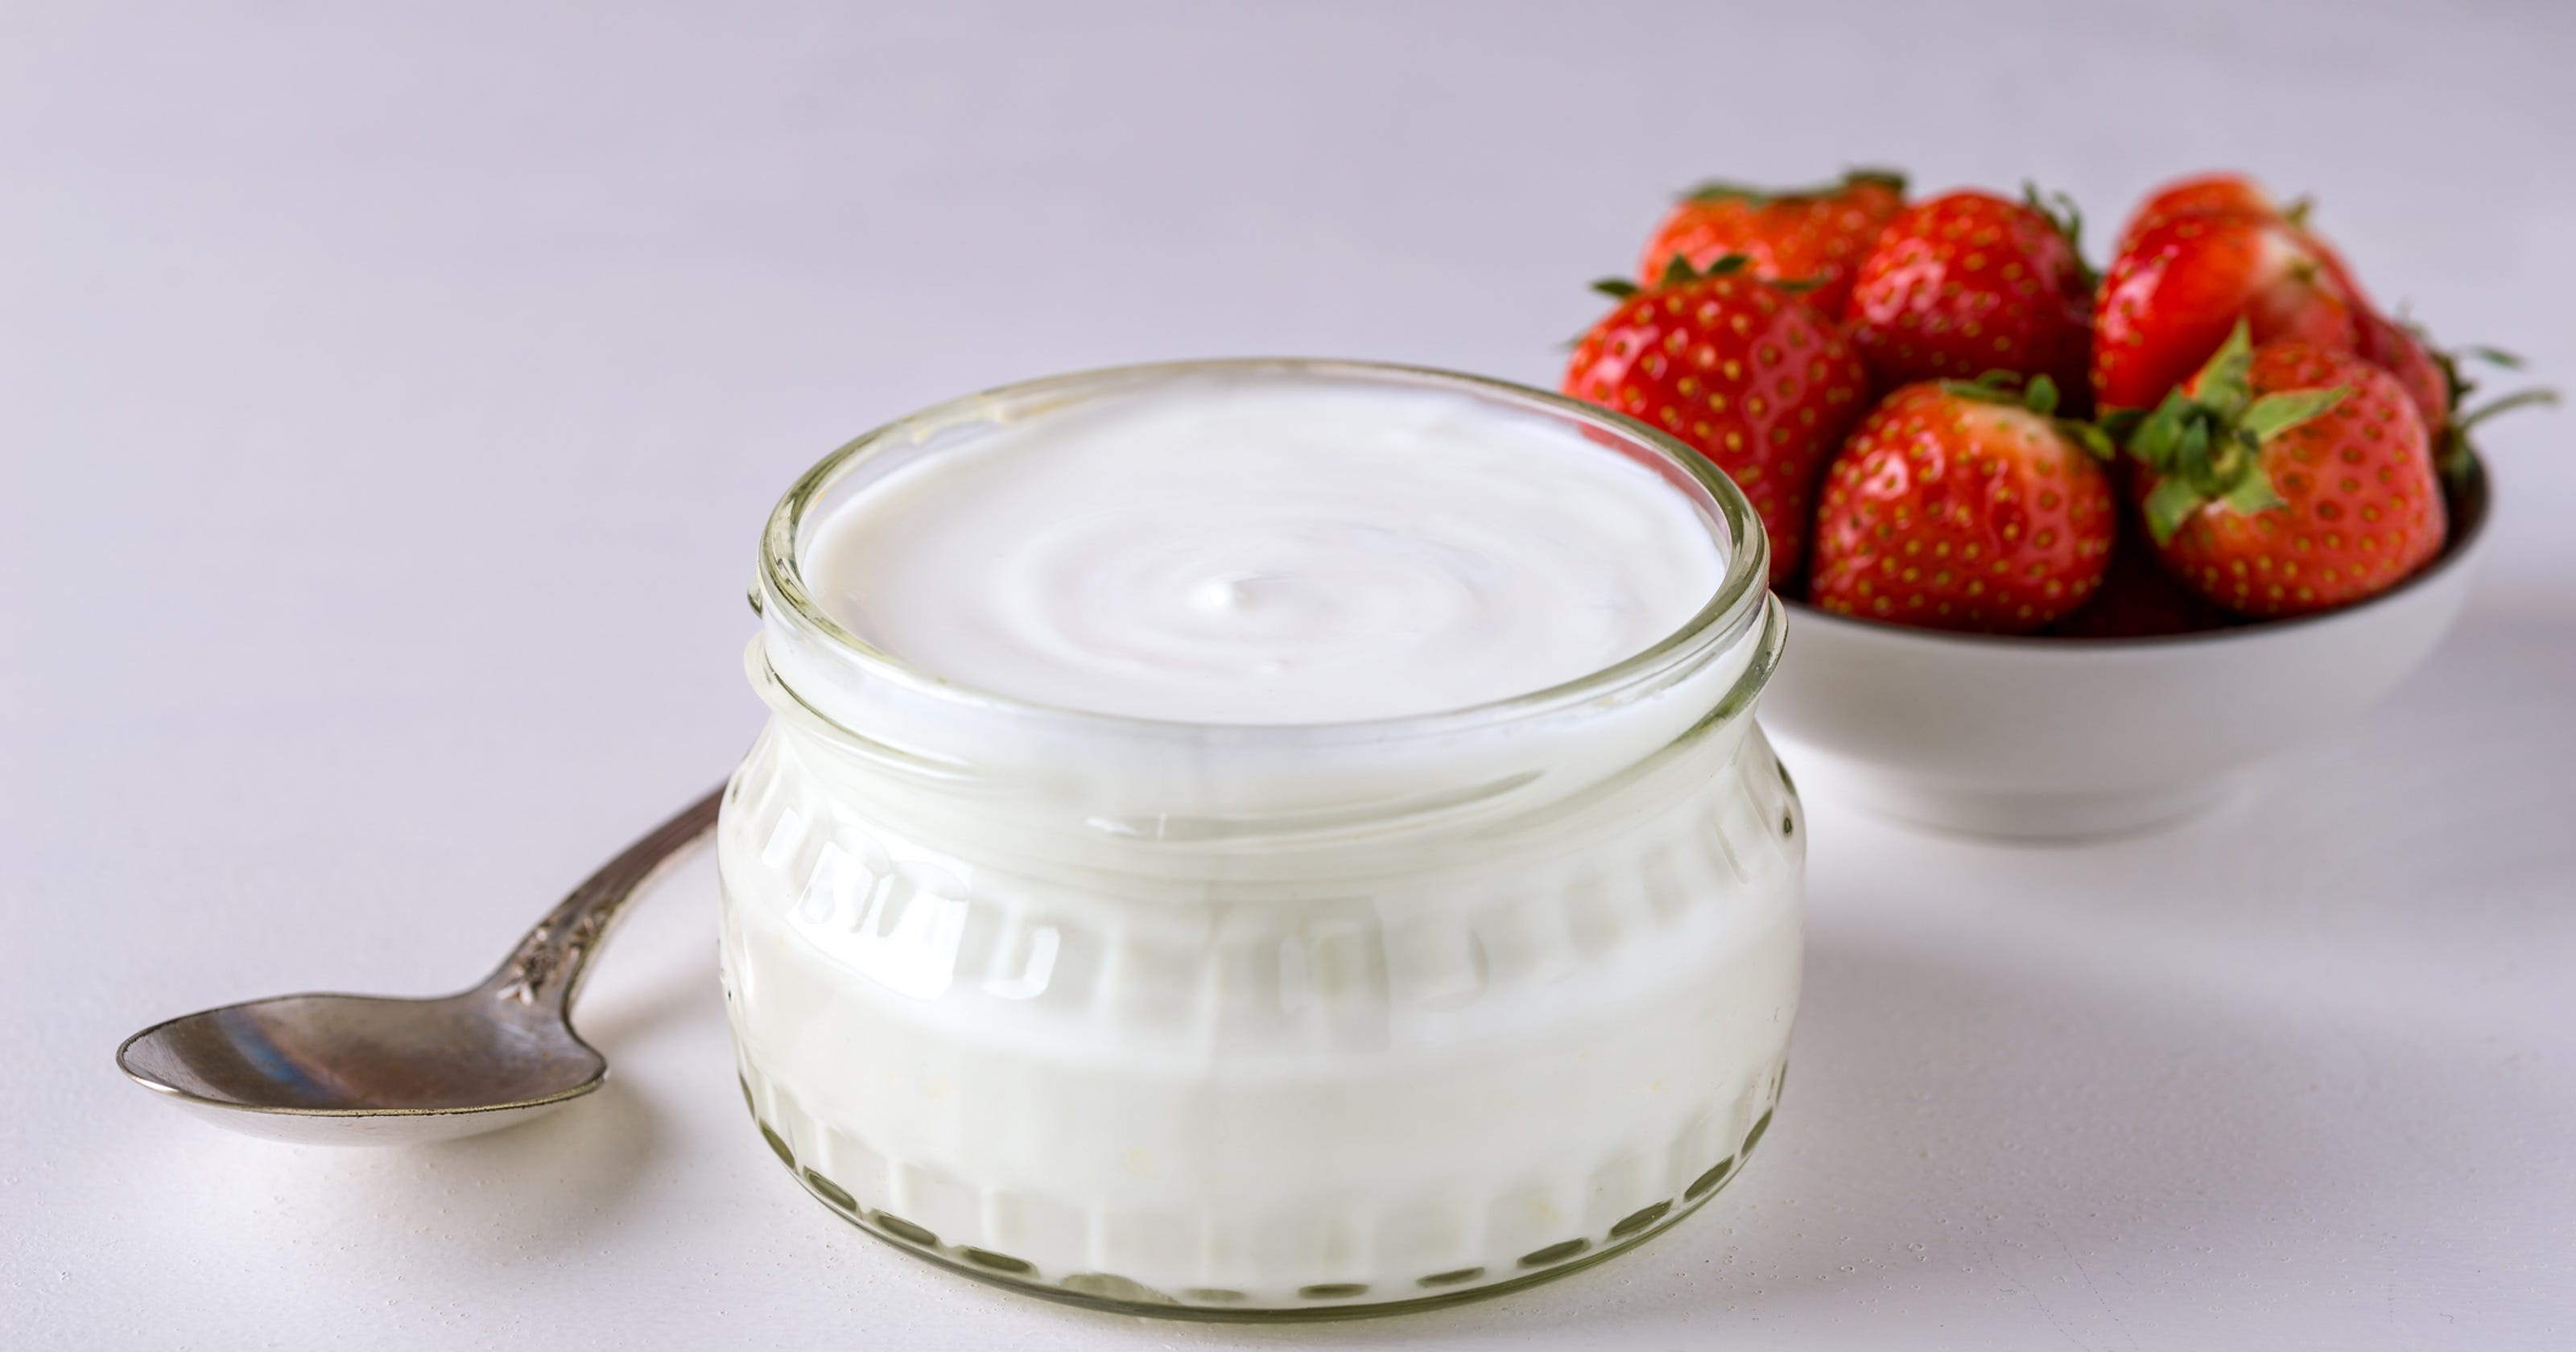 Is your yogurt really healthy? What to look for